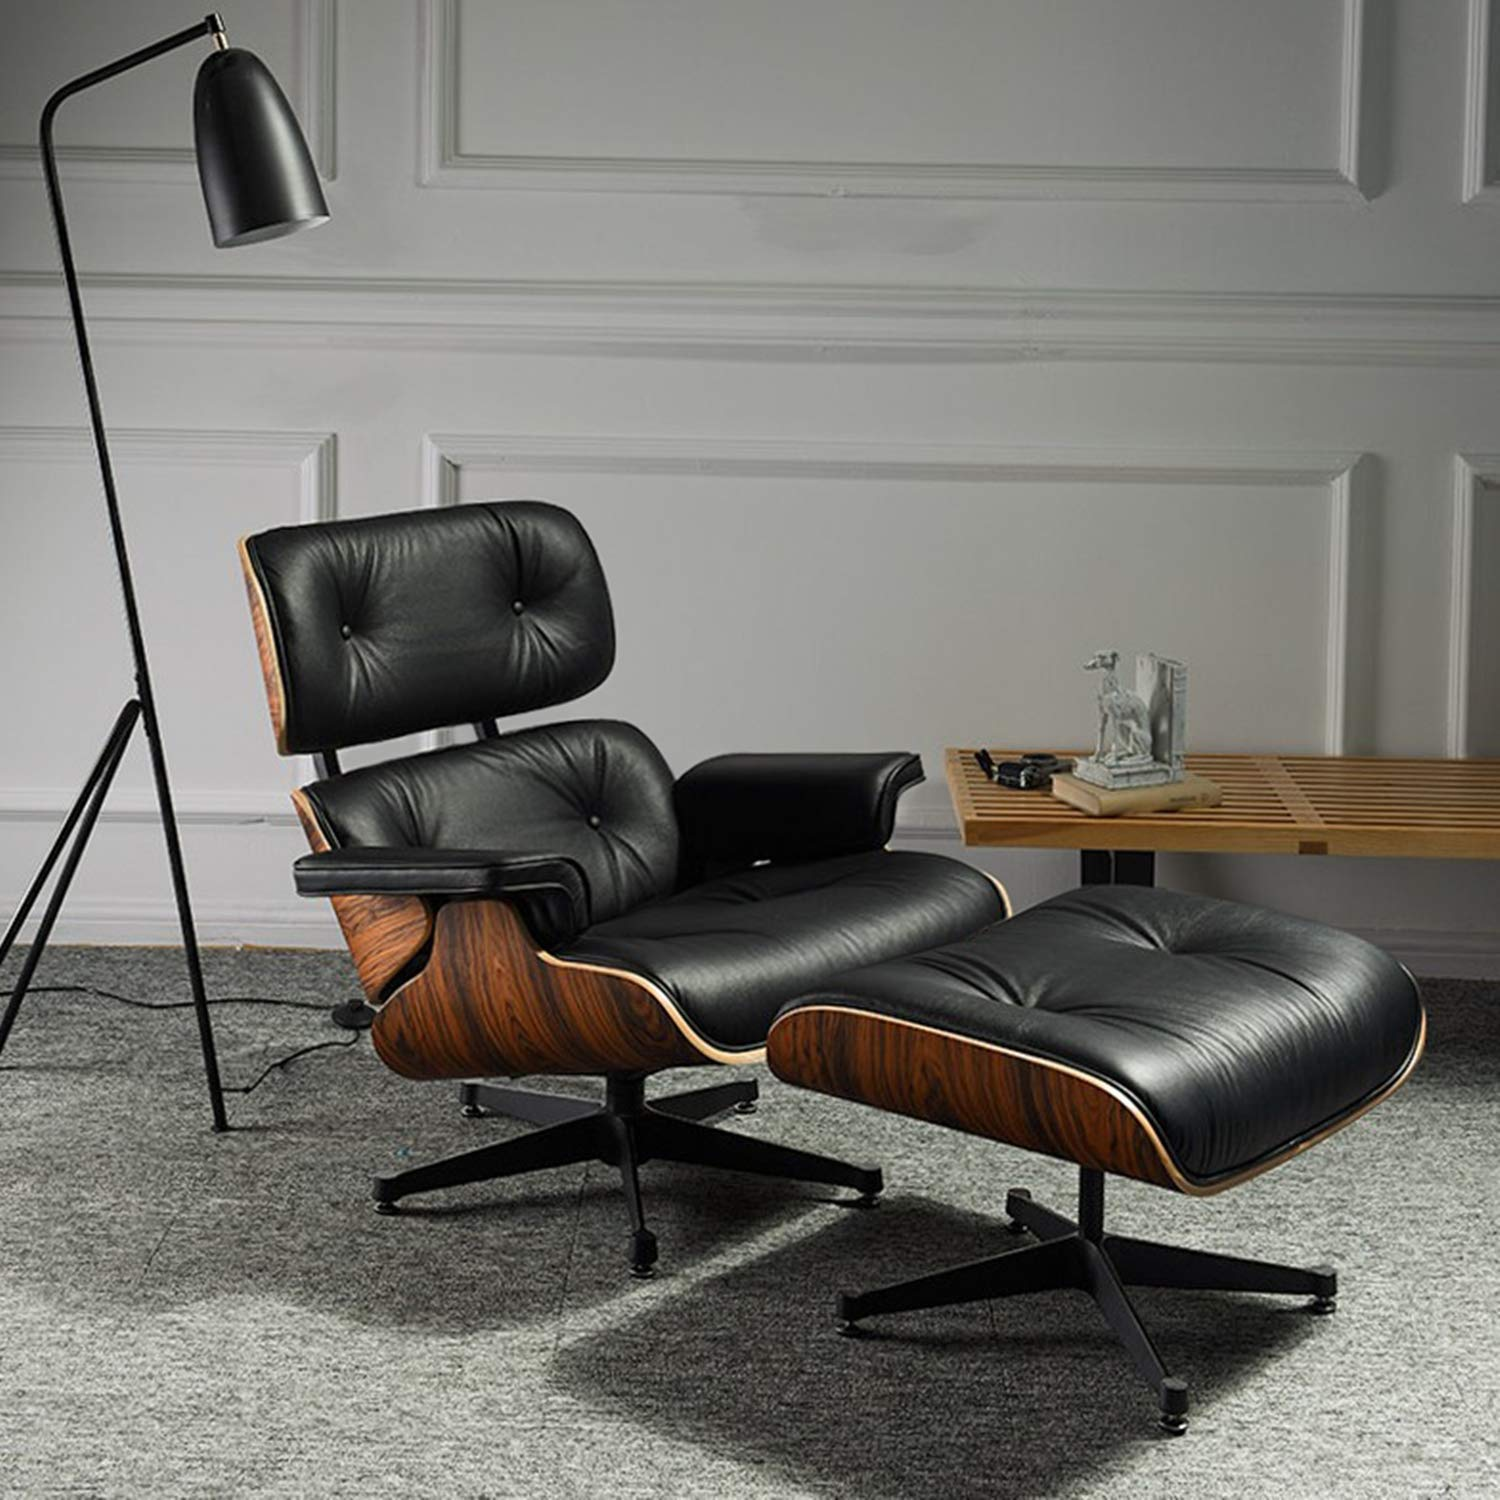 Furgle Lounge Chair Furniture Replica Living-Room Real-Leather Modern Classic for Hotel title=